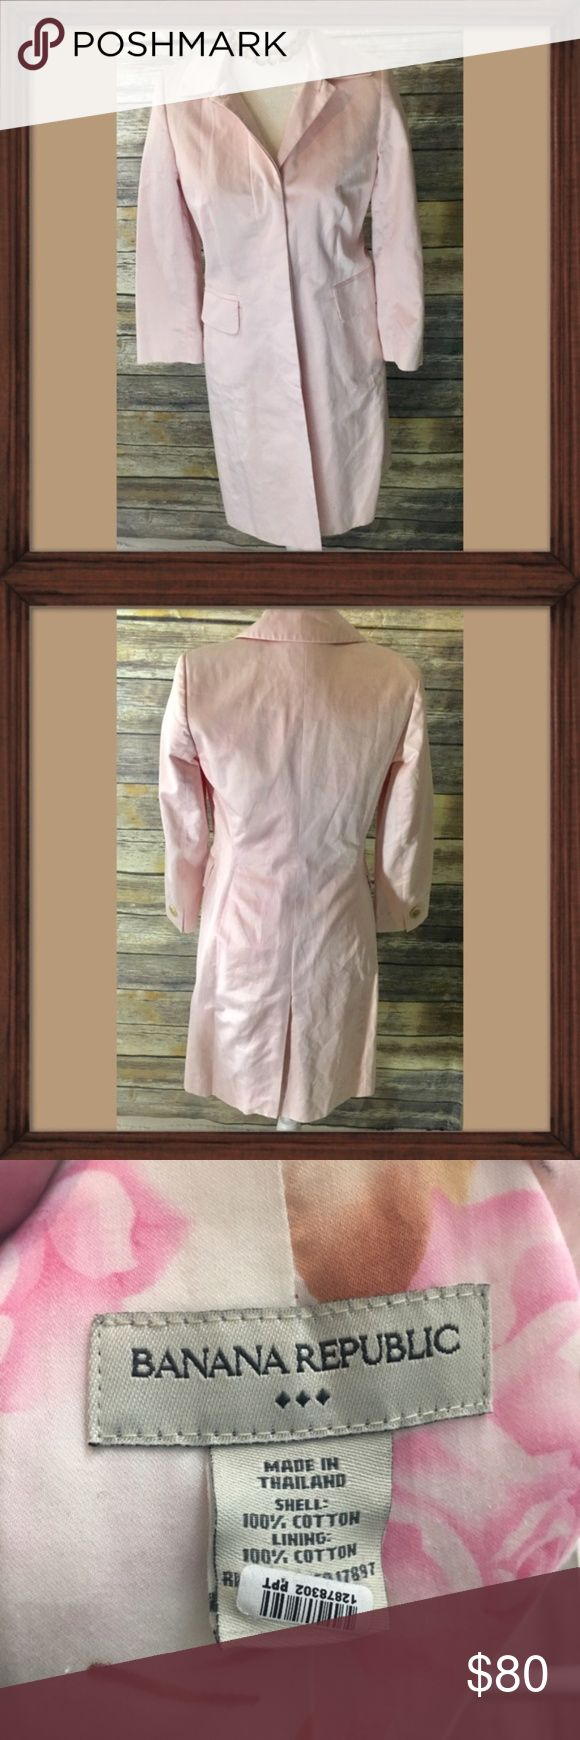 Banana Republic Light Pink Long Trench coat Light pink long trench coat. Size 2 please See measurements. Gorgeous rose lining. In excellent used condition. 36 inches long. Time traveler coat 😍😉. 21 inch sleeves. 16 inches arm pit to arm pit Banana Republic Jackets & Coats Trench Coats